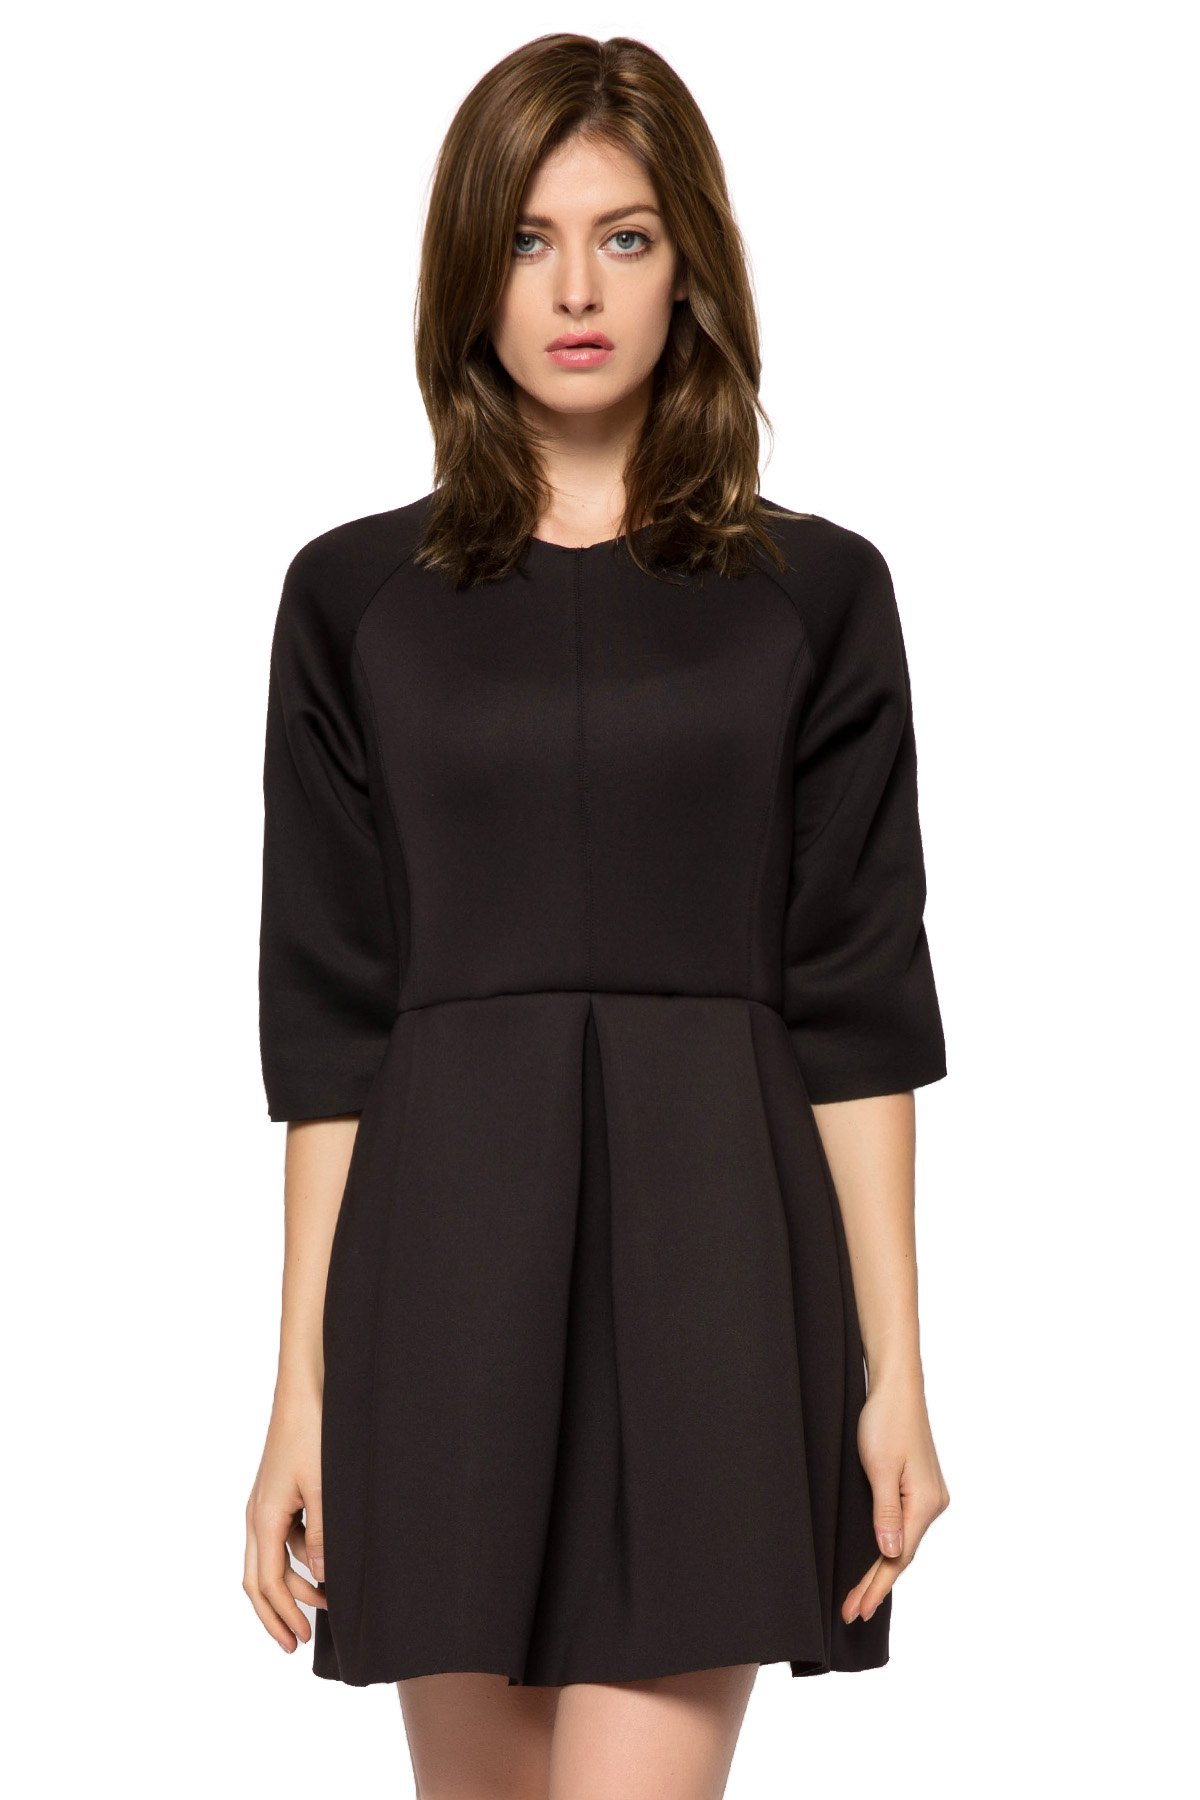 Round Collar 3/4 Sleeve Solid Color Pleated A-Line Dress